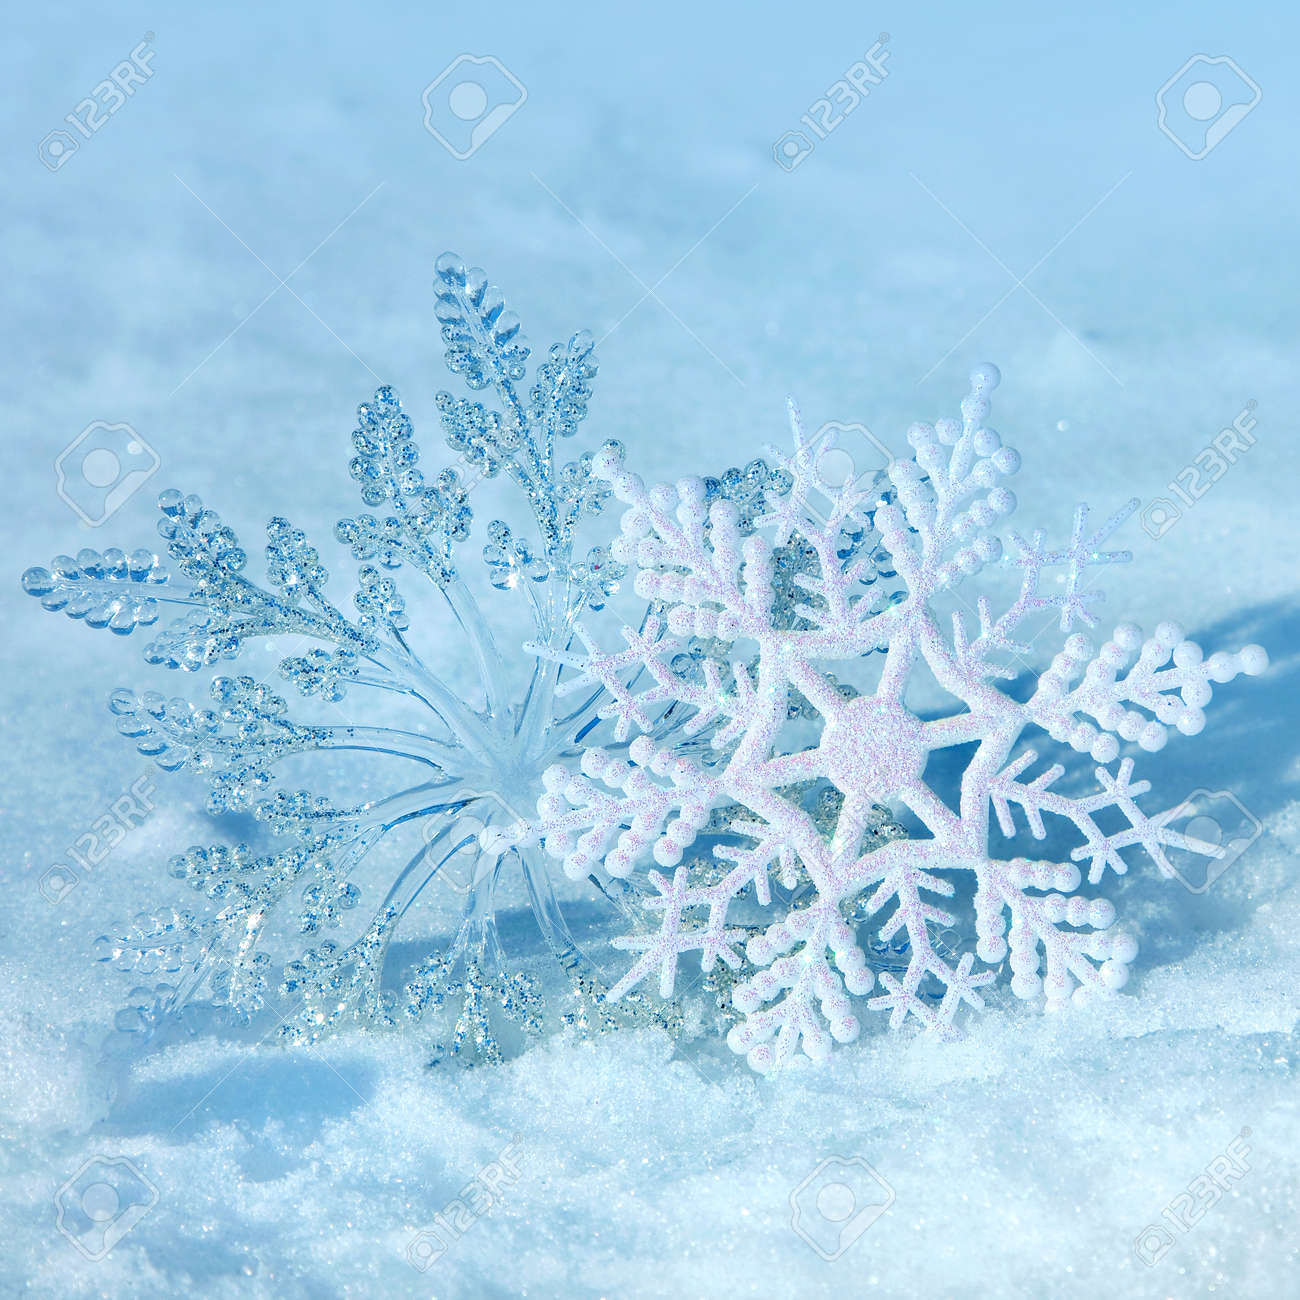 Christmas Decorations Snowflakes On A Snow Background Of Nature ...